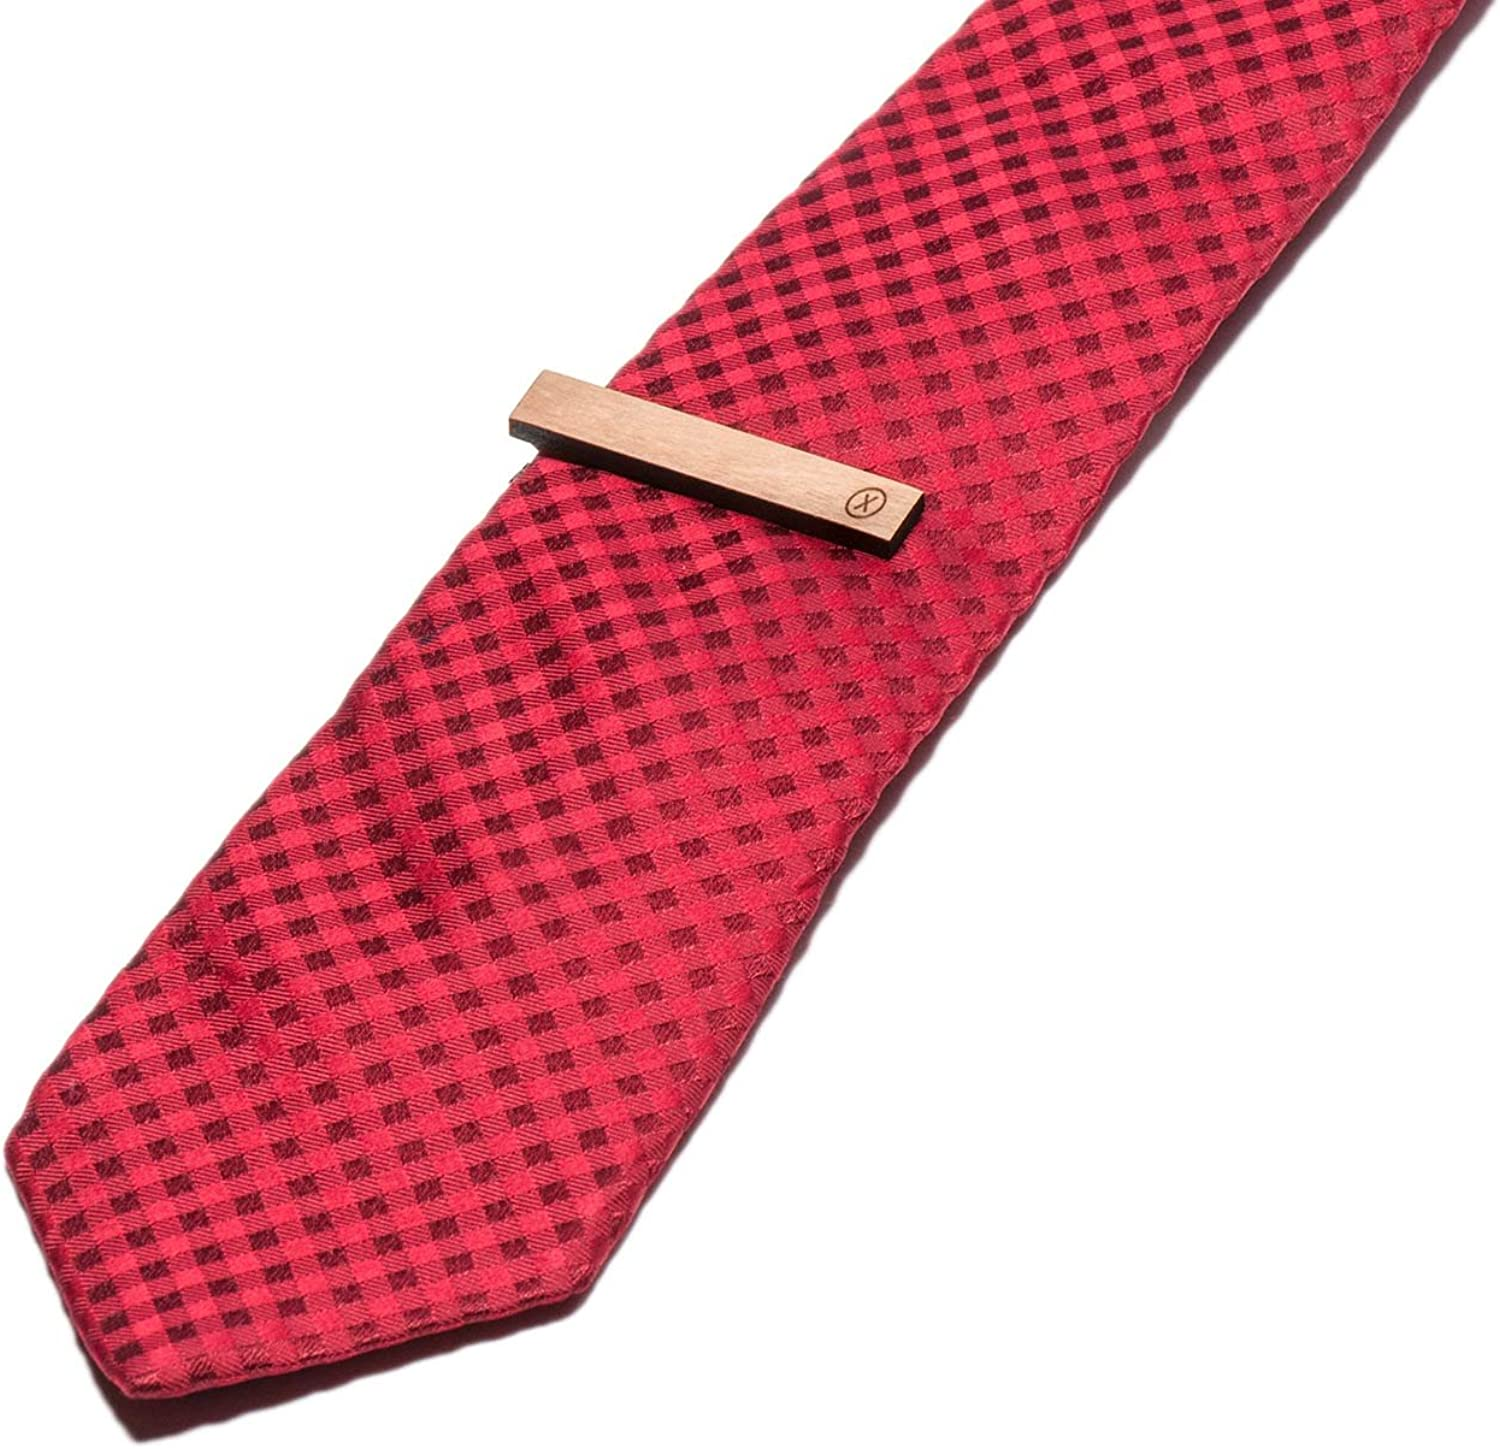 Cherry Wood Tie Bar Engraved in The USA Wooden Accessories Company Wooden Tie Clips with Laser Engraved Roman Numeral Ten Design